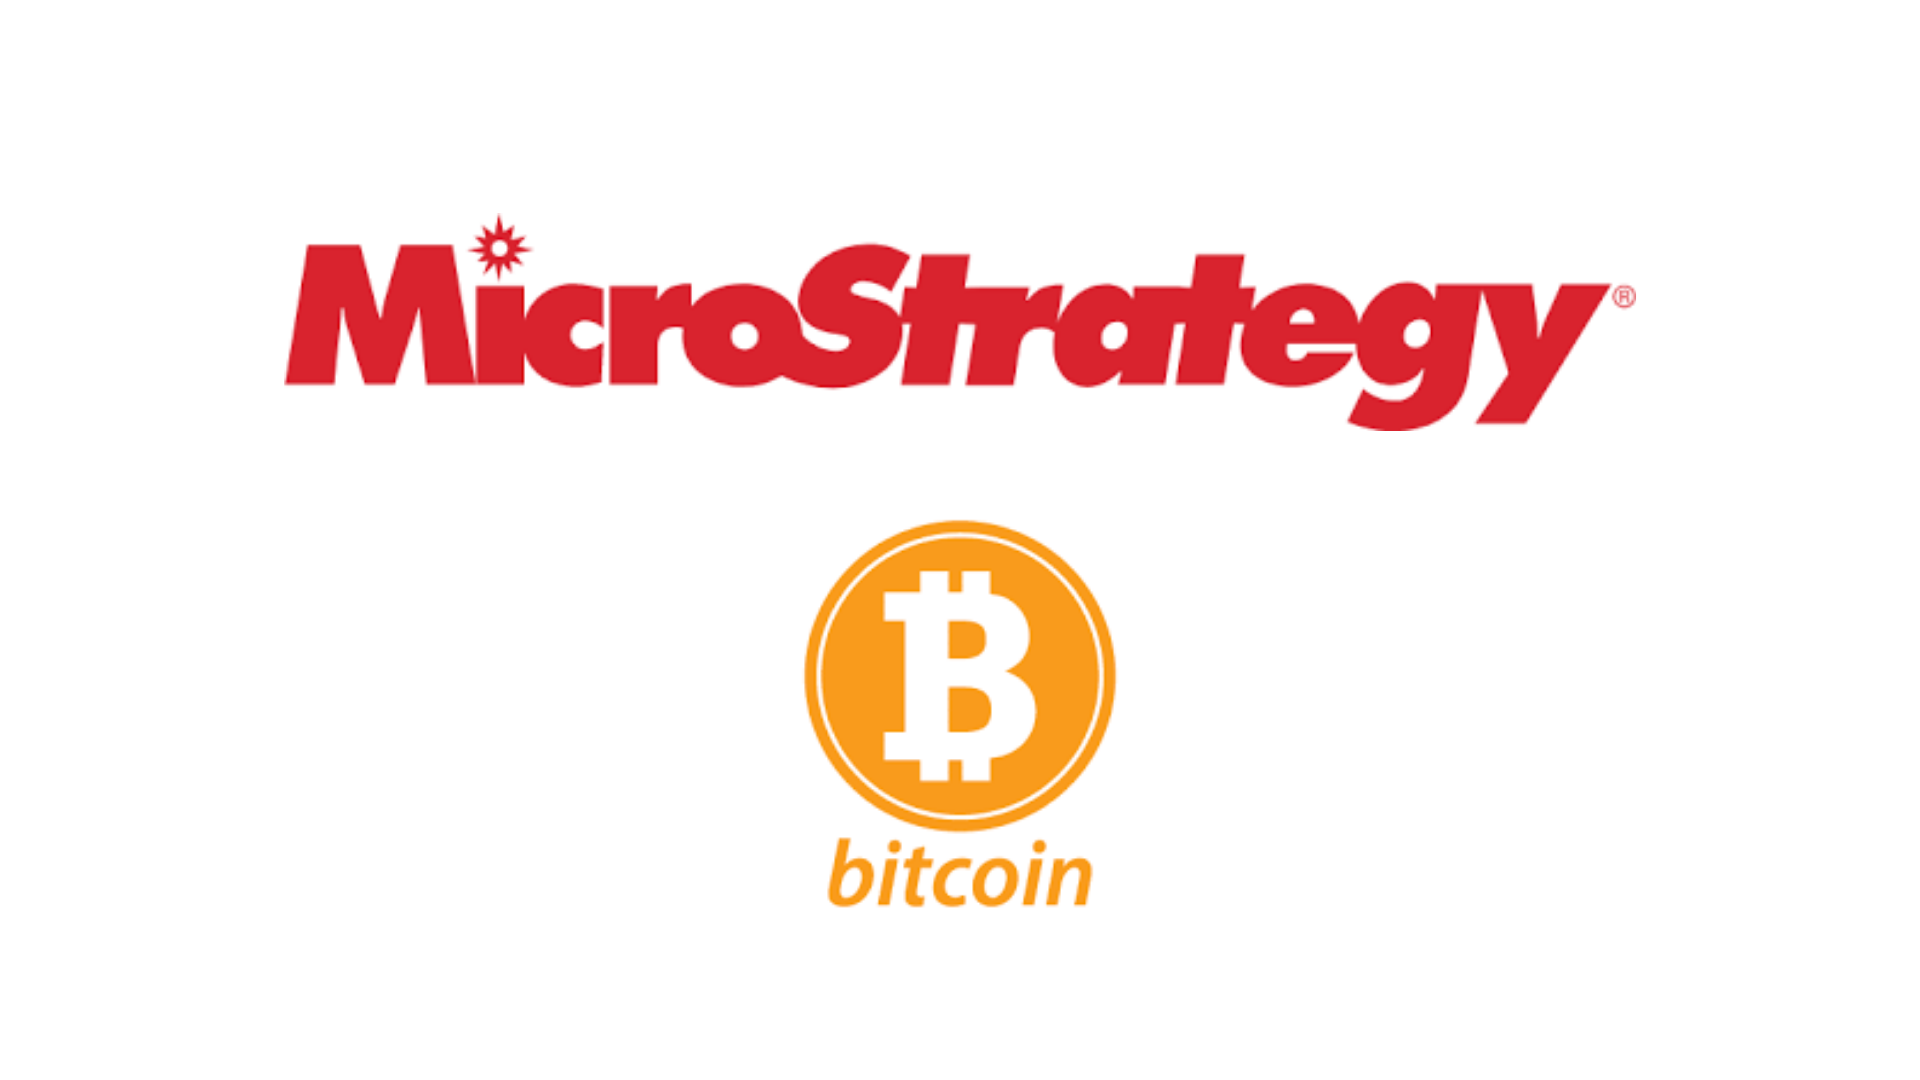 MicroStrategy's purchase of Bitcoin shows that institutional investors are trying to reduce risk